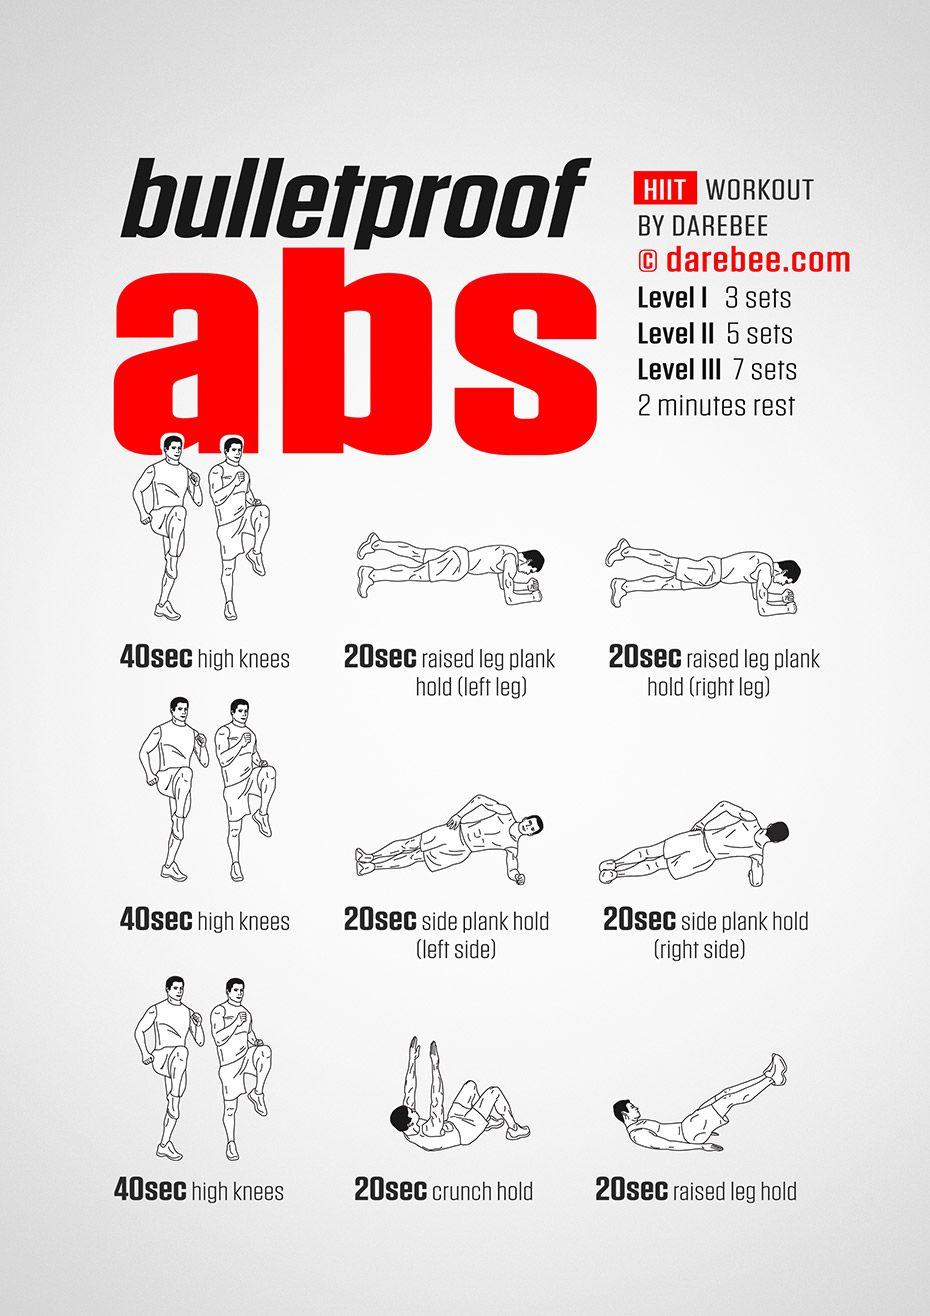 Bulletproof Abs Workout